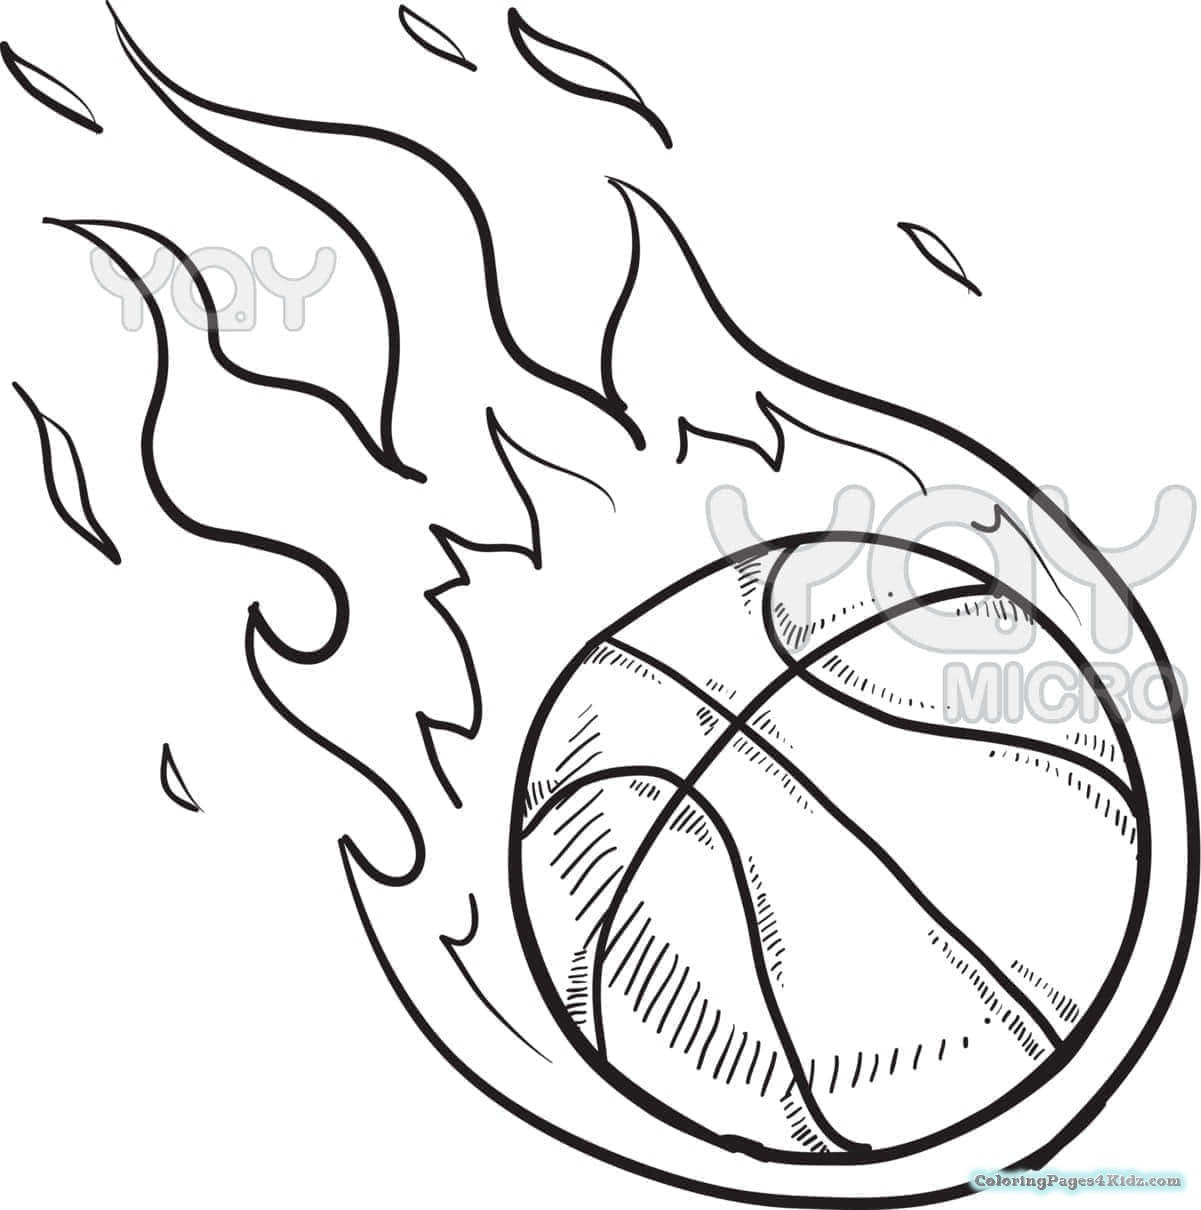 Creative Stephen Curry Coloring Pages At Luxurious Article Stephan